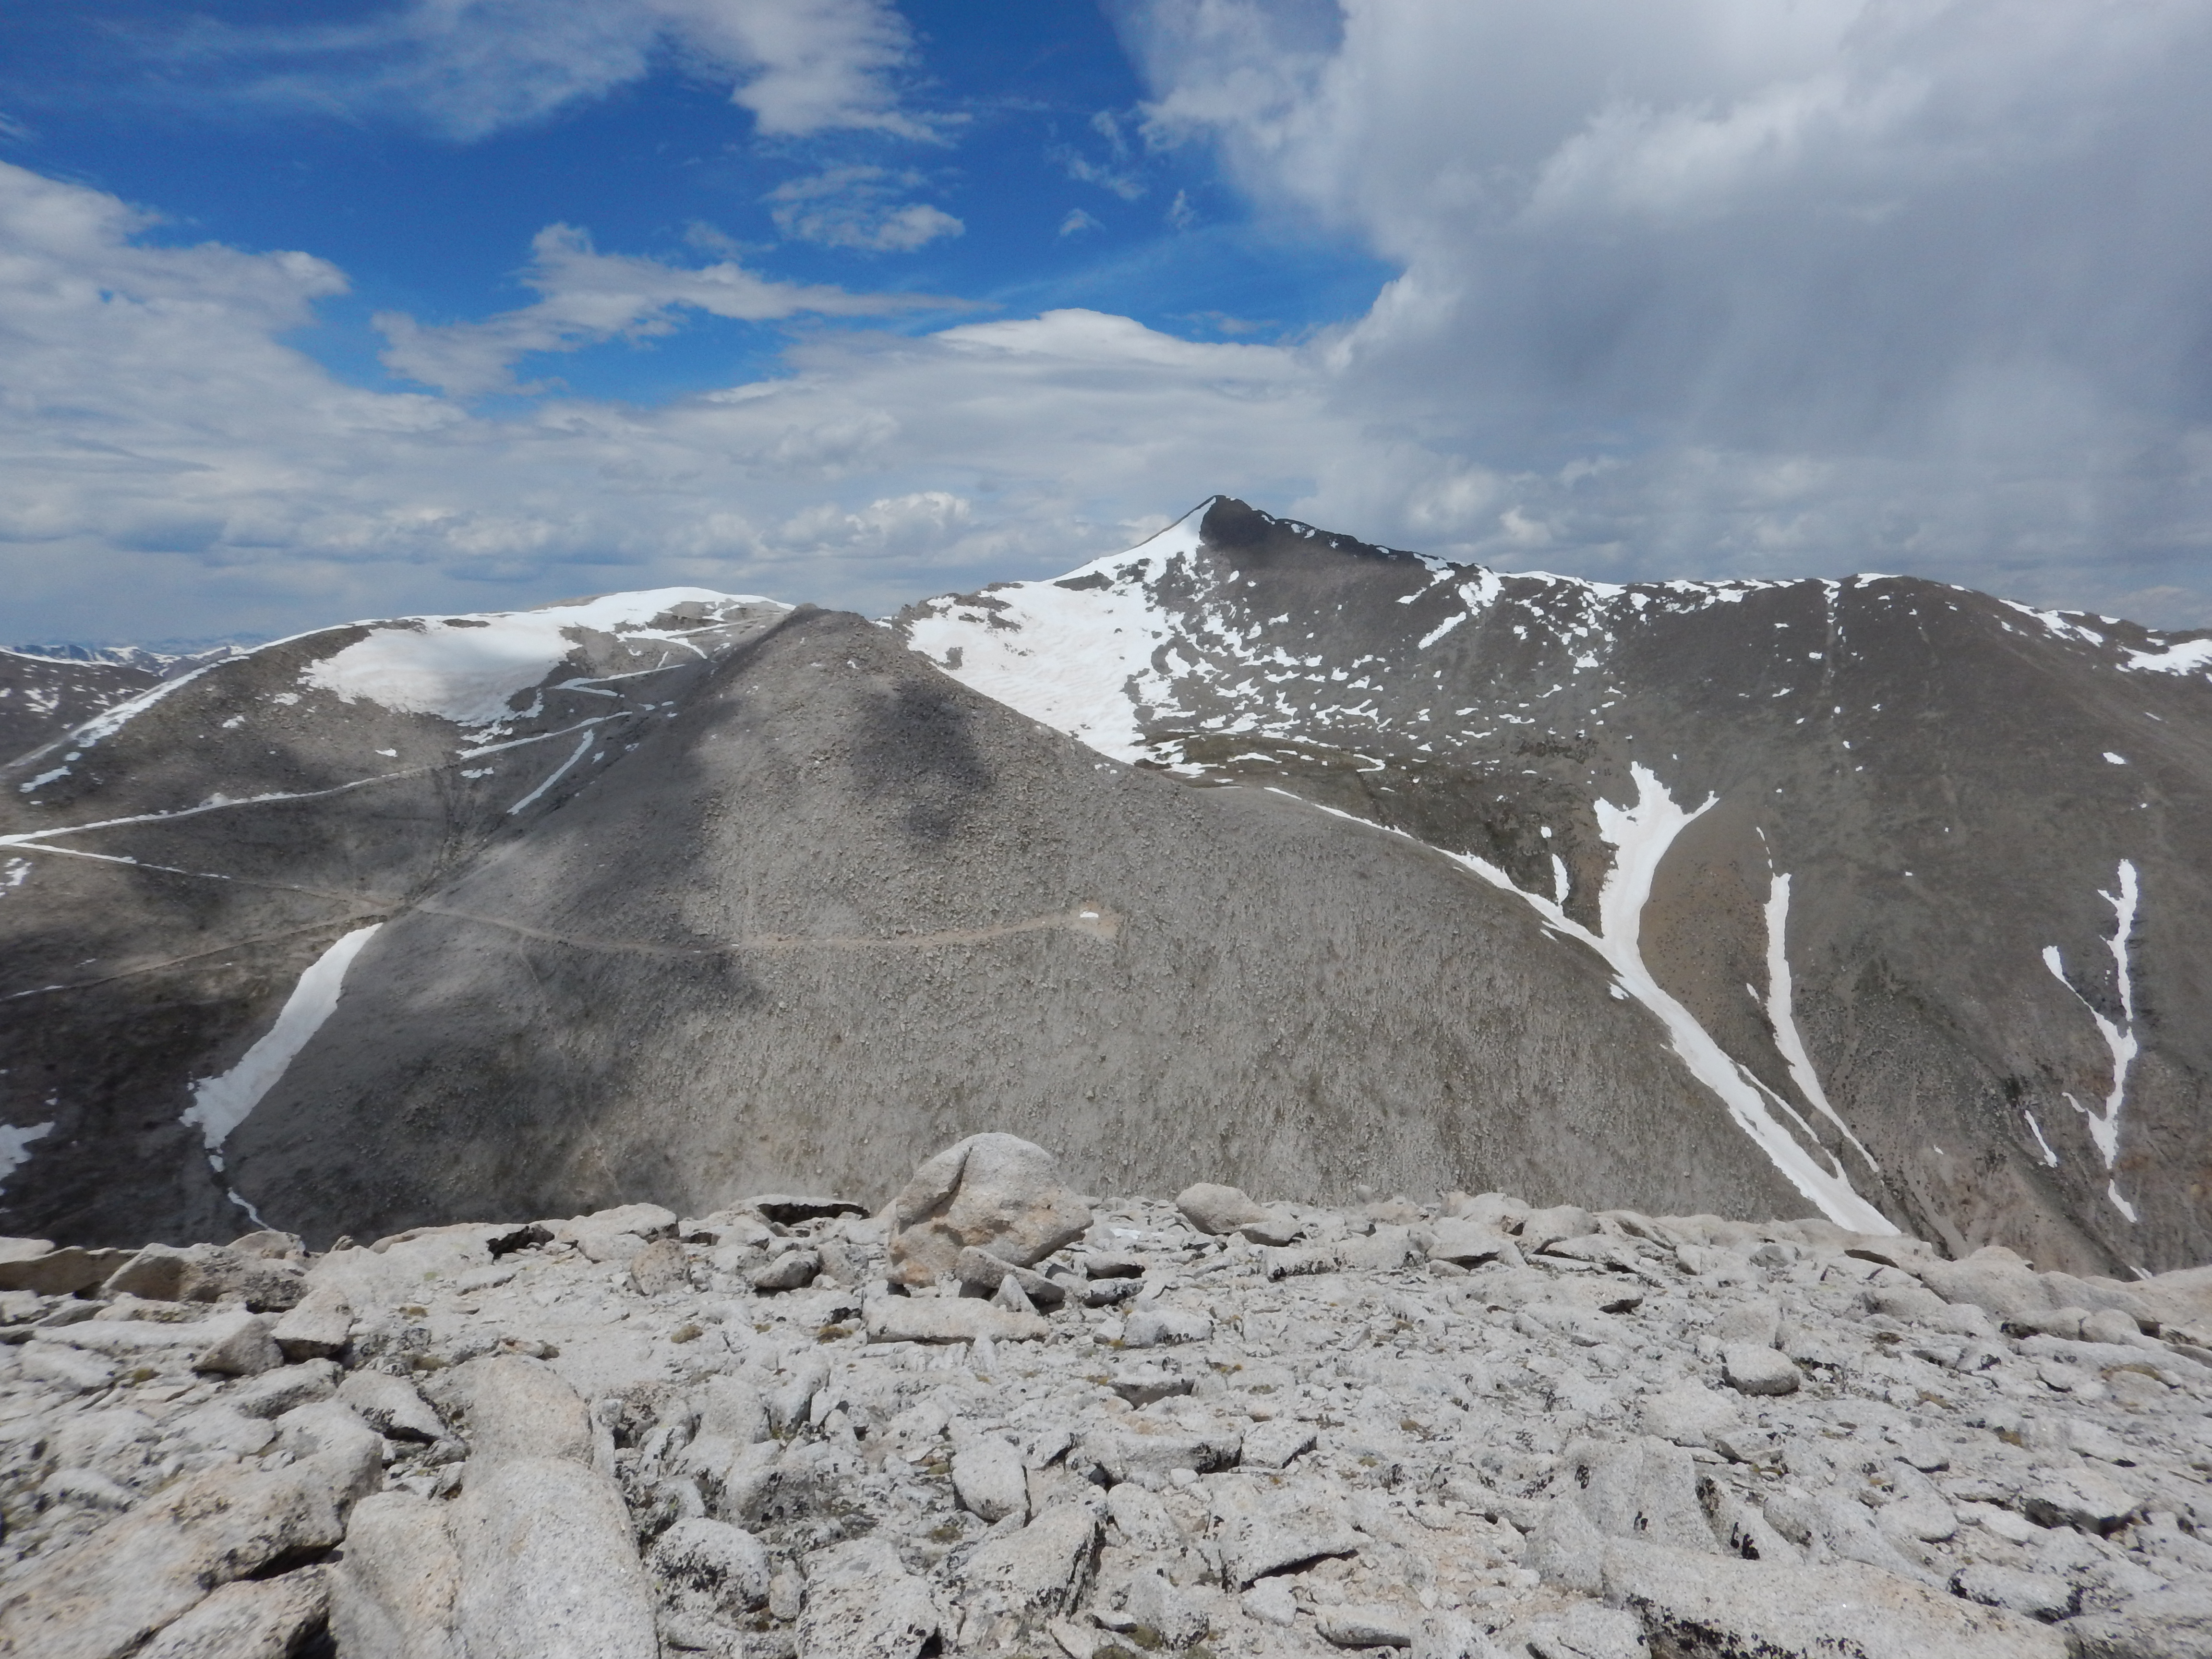 Looking towards Mt. Antero from Mt. White